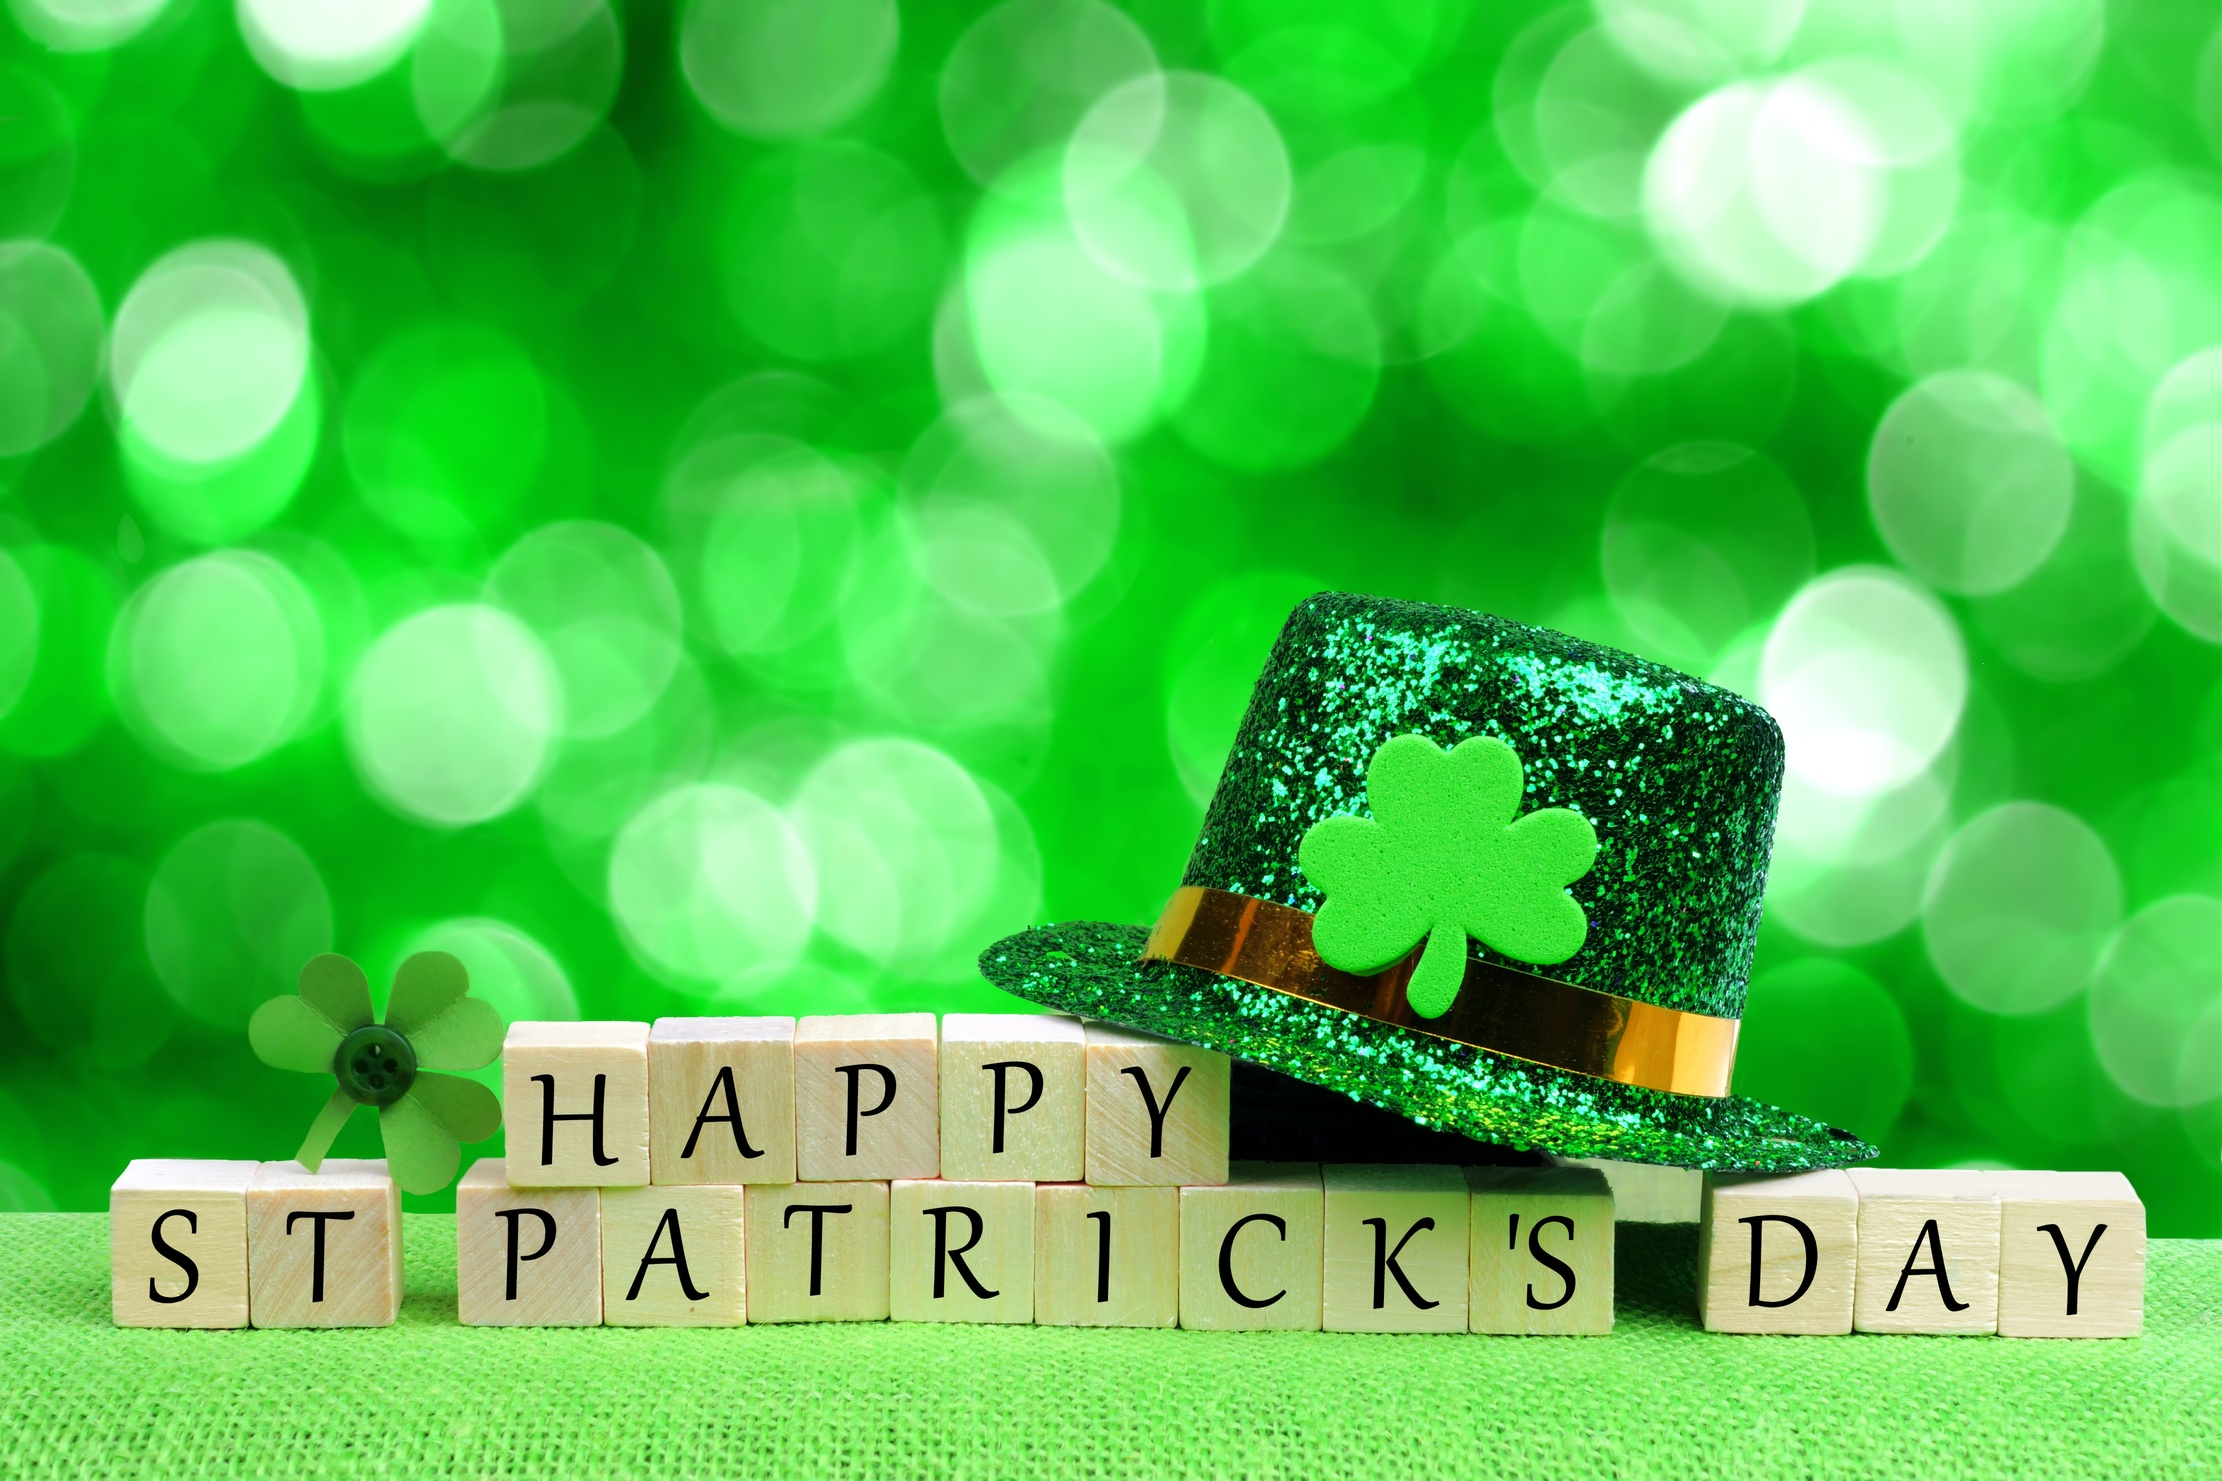 11 Fun Facts About St. Patrick's Day - SPOTAHOME